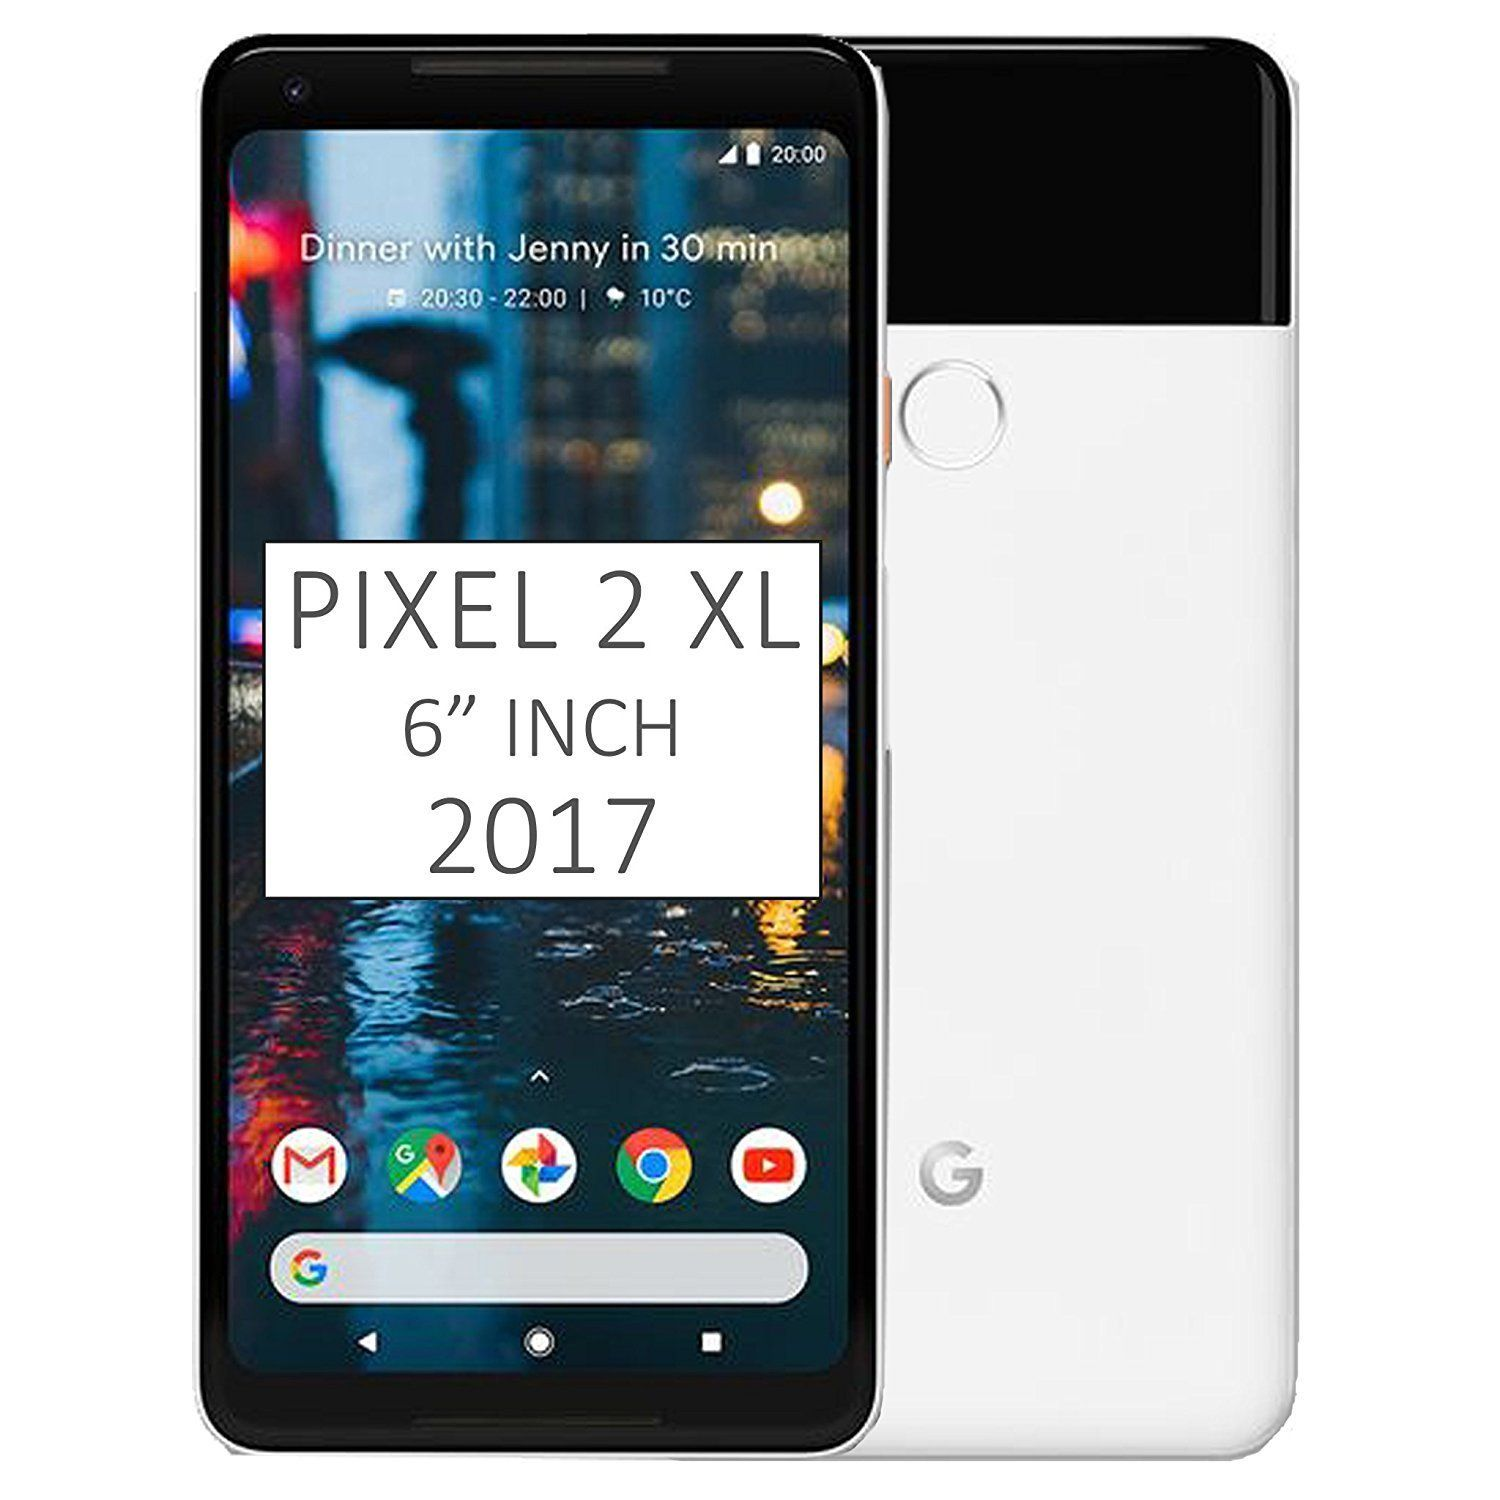 Pixel 2 Xl Phone 2017 By Google 128gb G011c 6 Inch Factory Unlocked Android 4g Lte Smartphone Black White International Version Avec Images Blanc Stylo